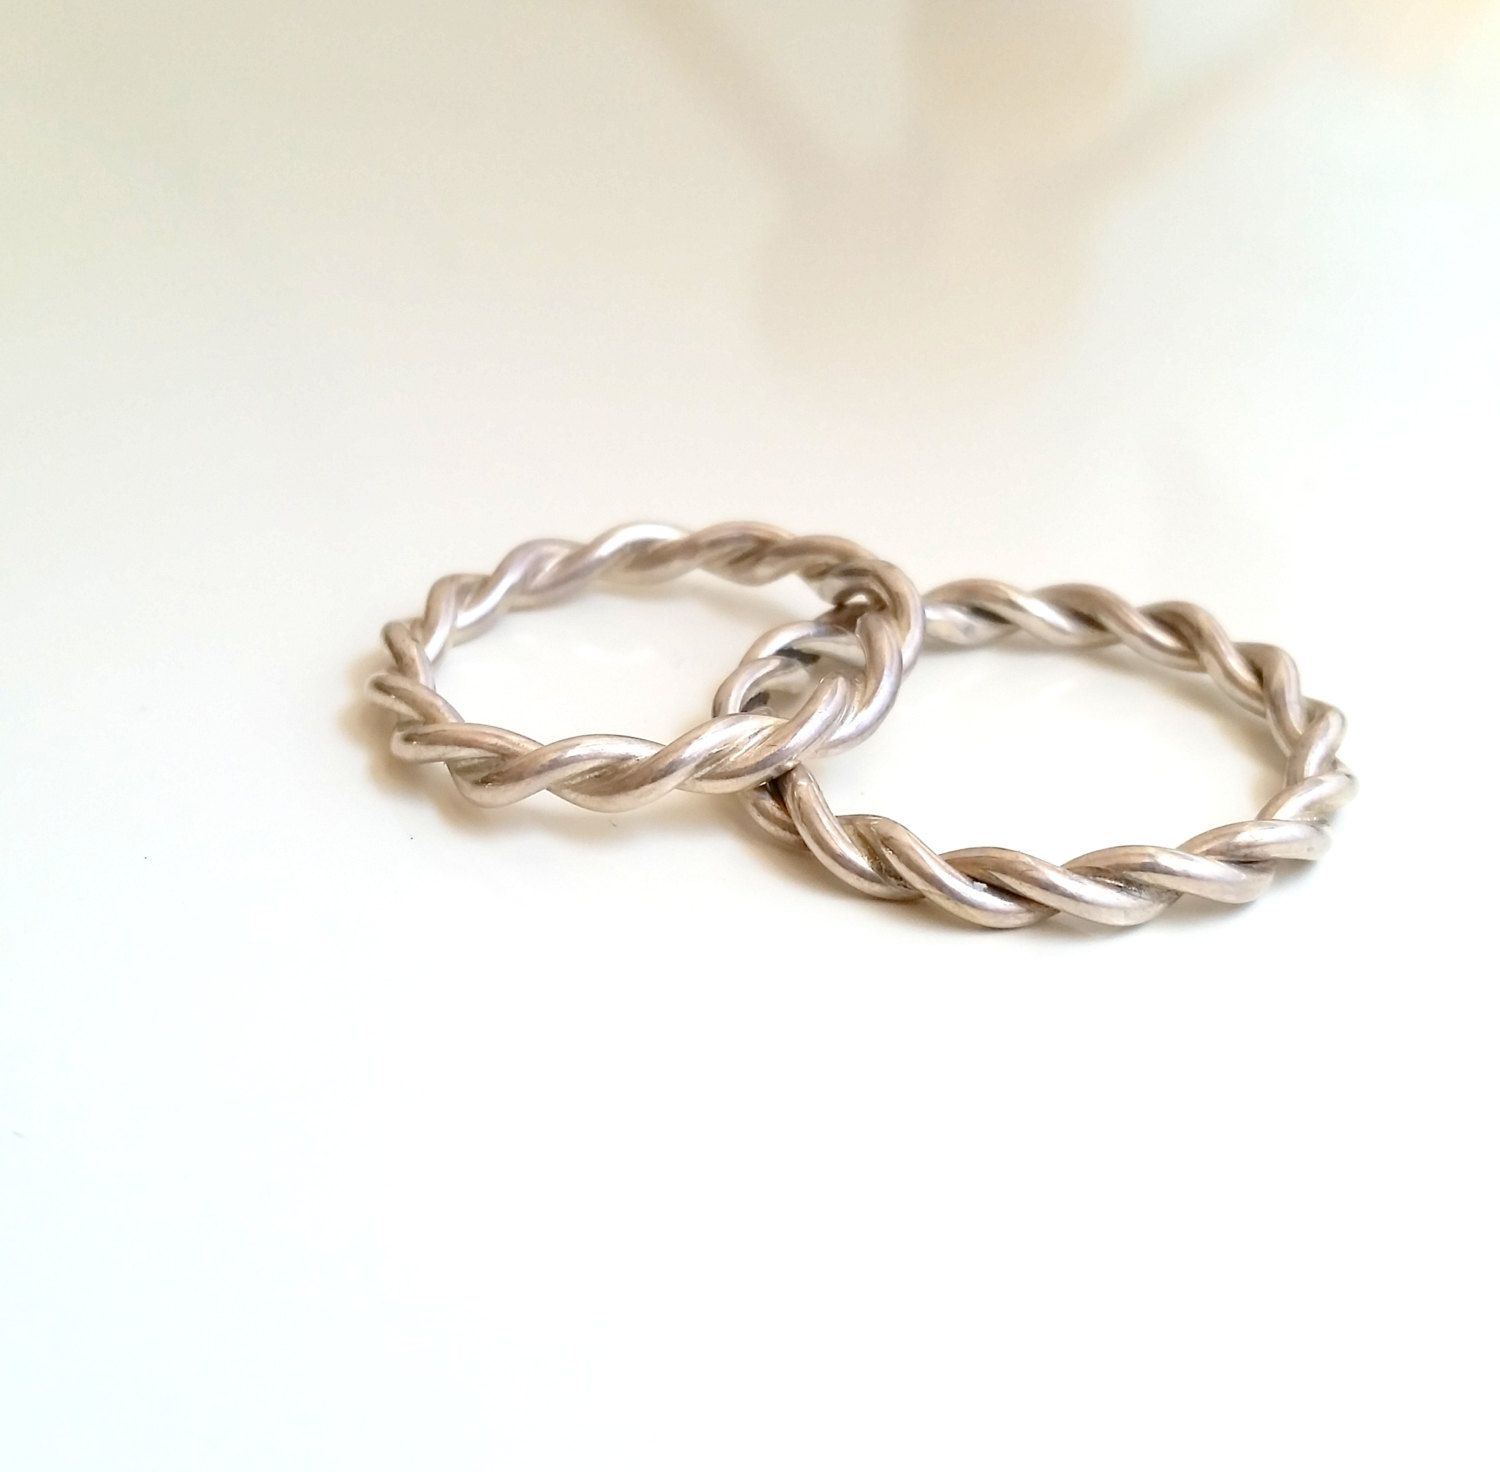 Matching wedding bands - Silver Tick Rope Ring- Thin Silver Twist ...